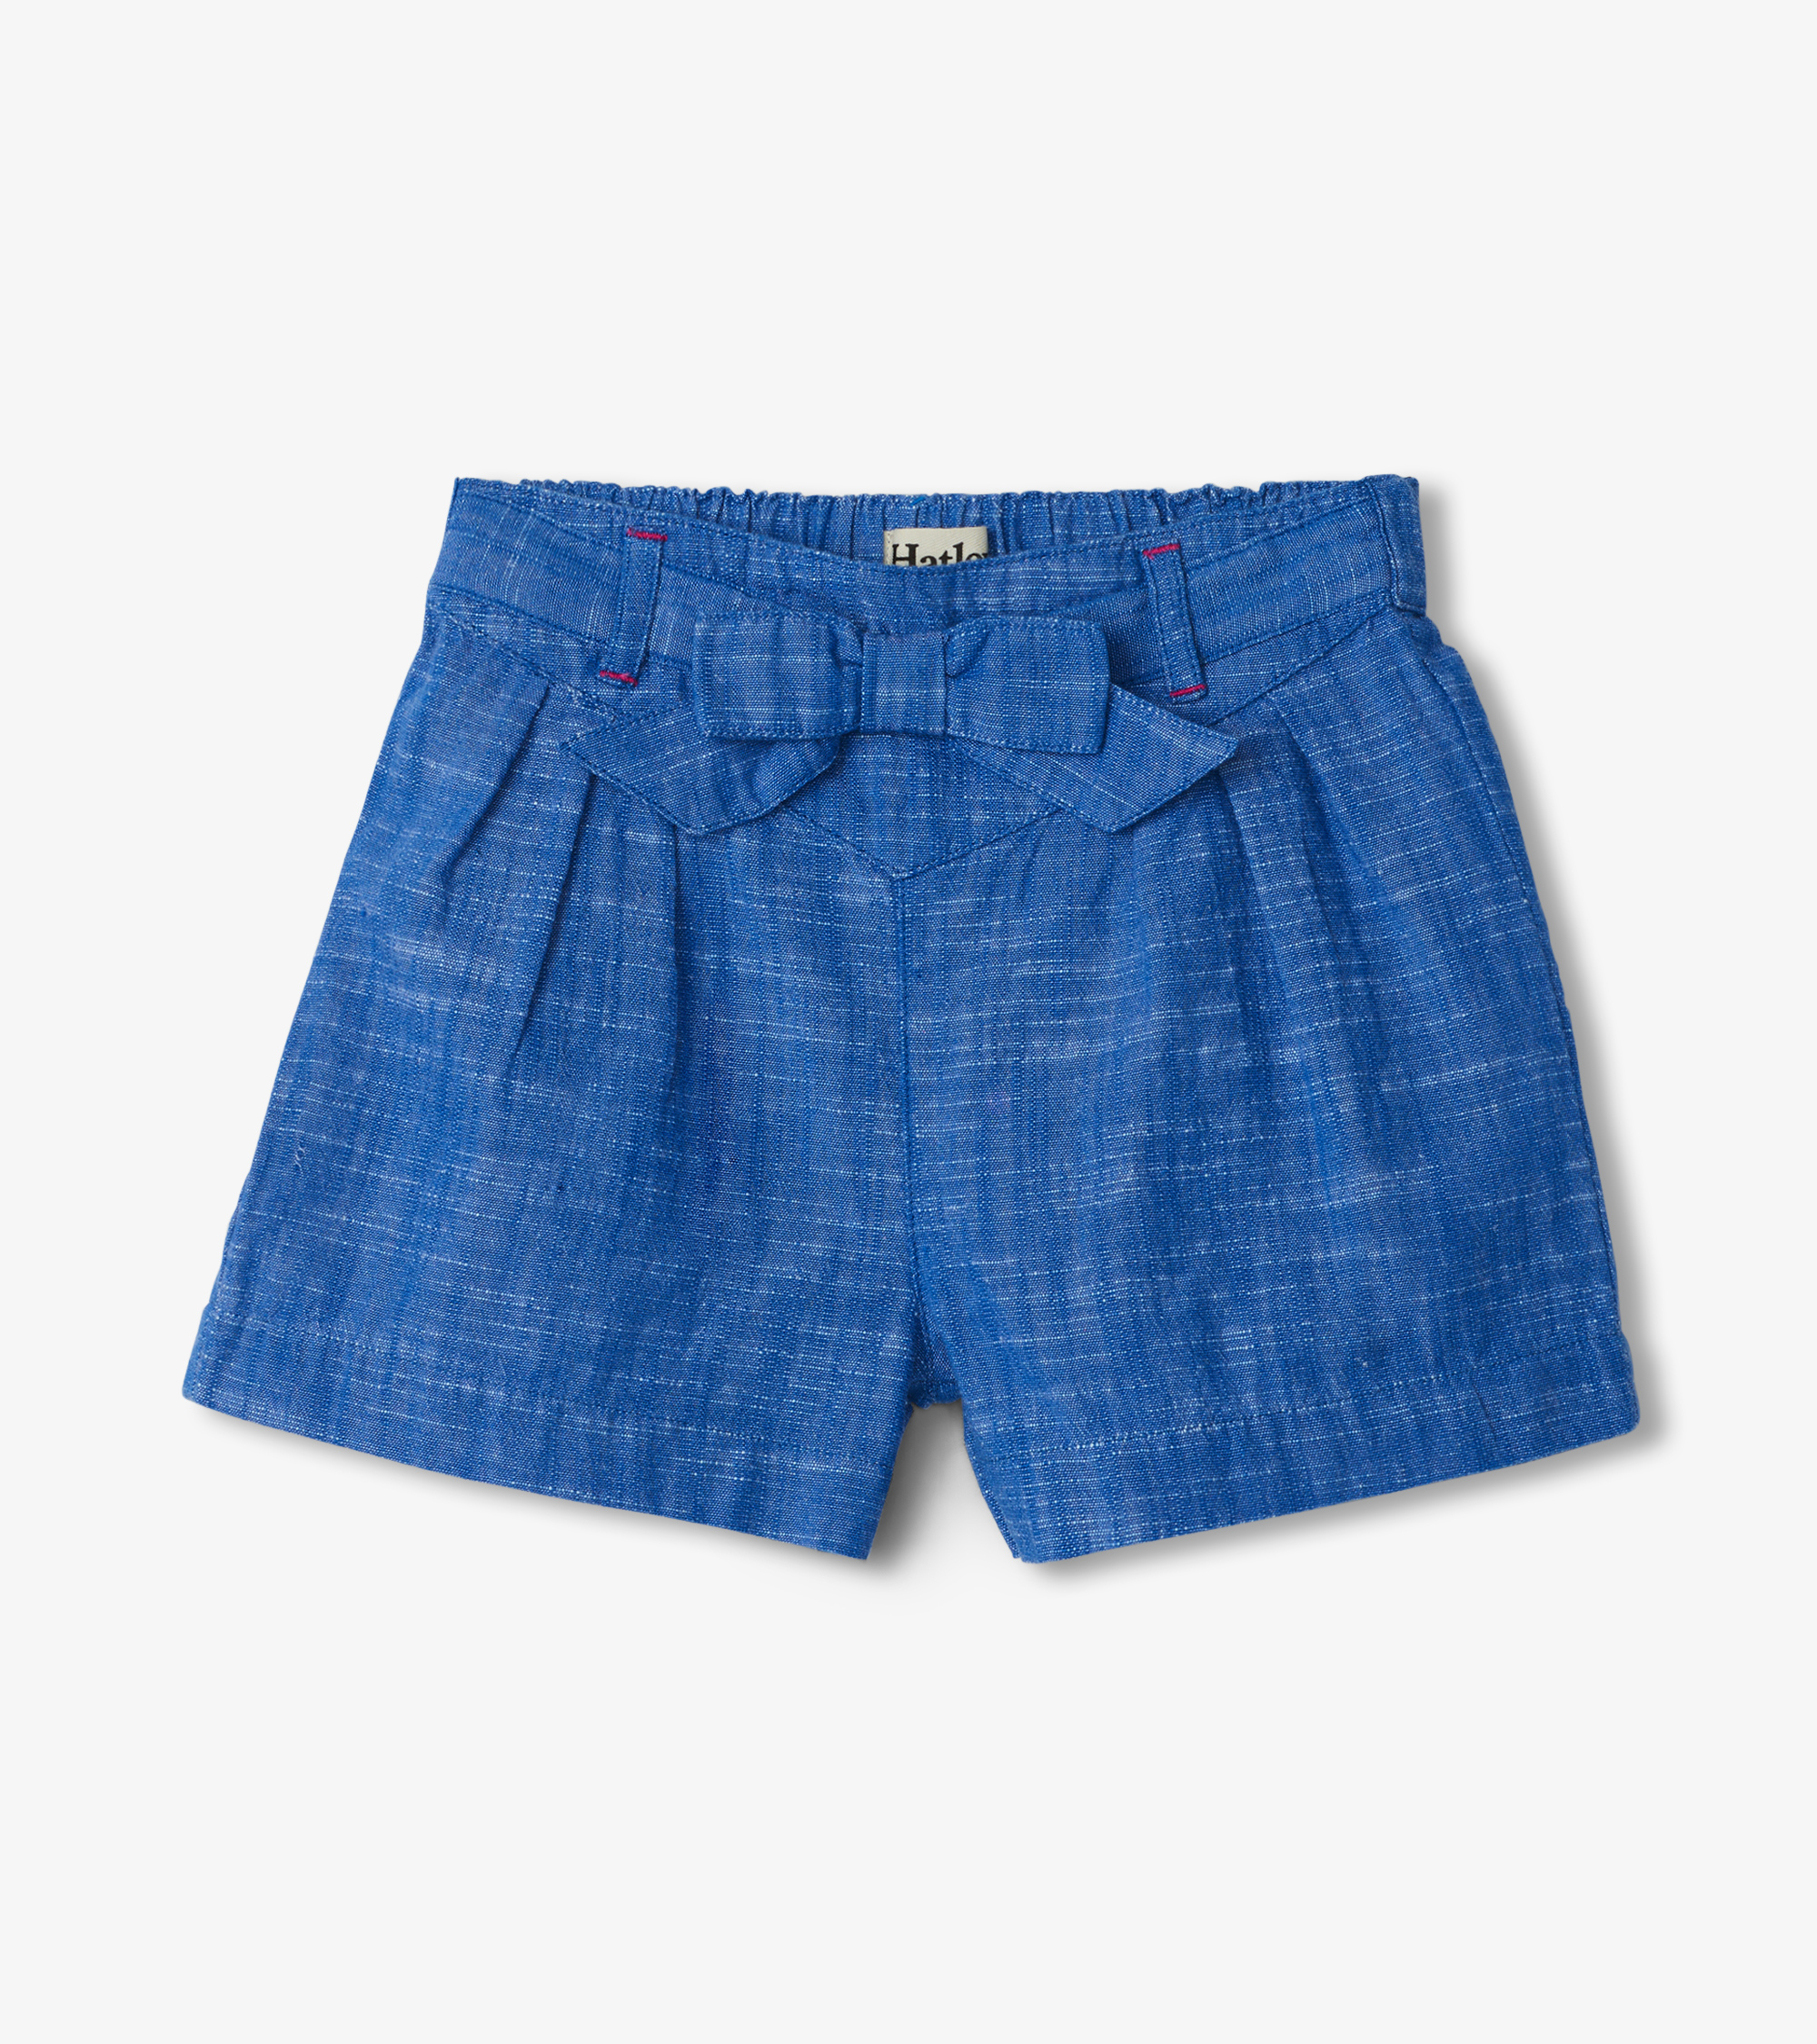 NOW £13 Hatley Belted Chambray Paper Bag Shorts (Was £22)